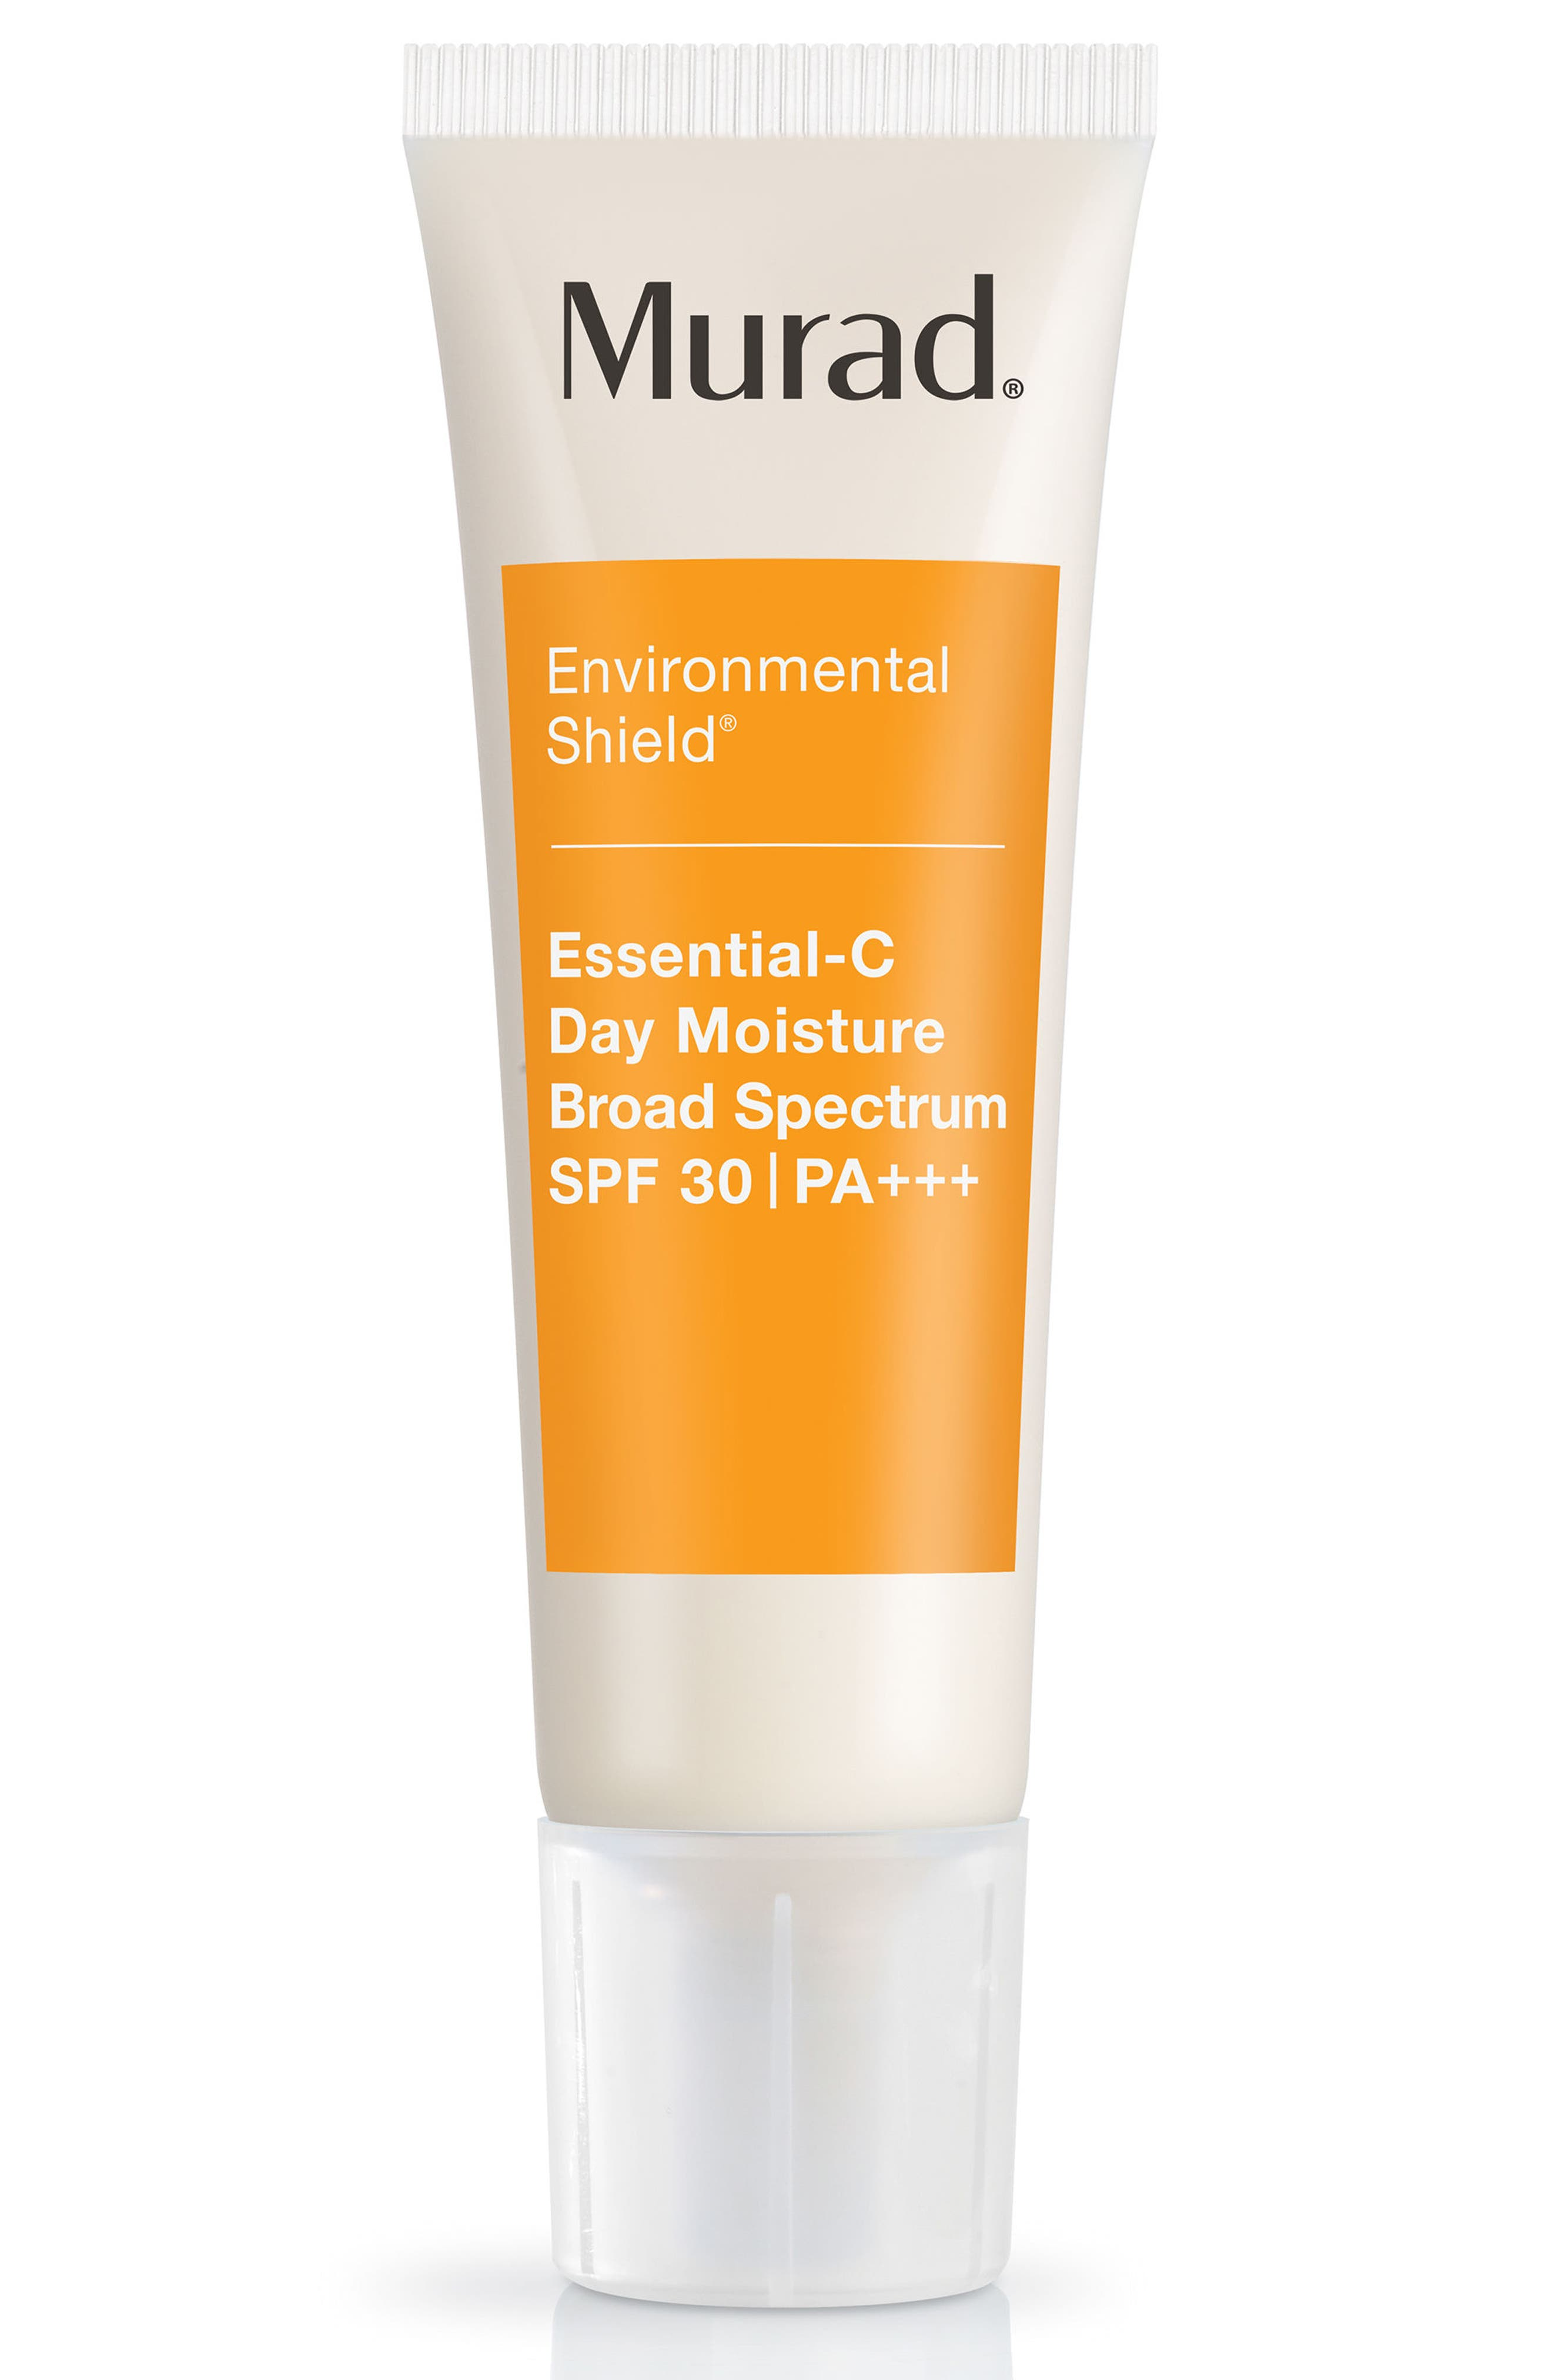 Murad® Essential-C Day Moisture Broad Spectrum SPF 30 PA+++